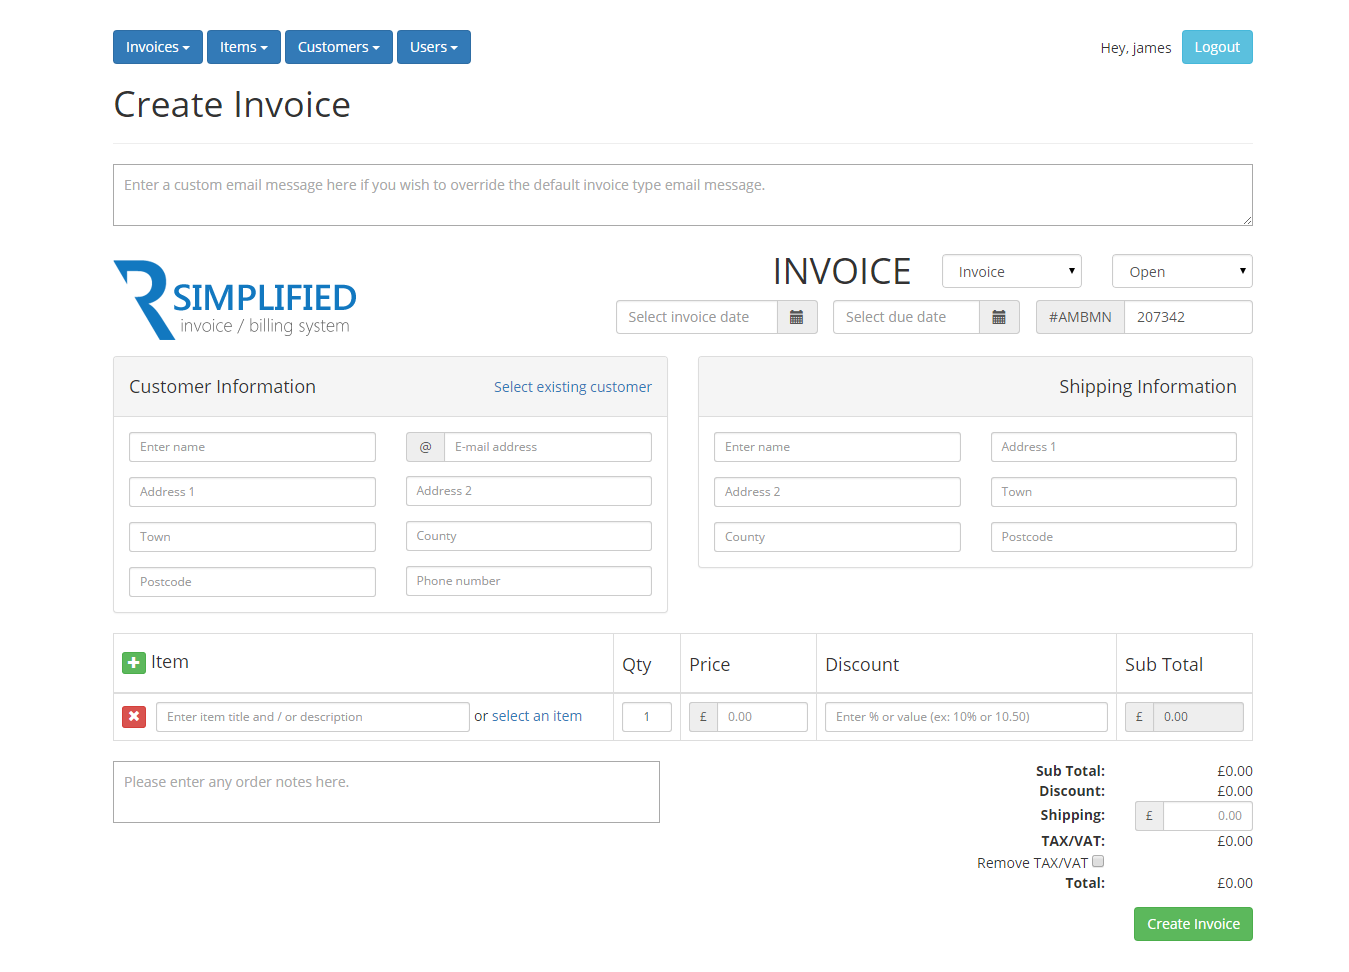 Ebitus  Mesmerizing Simplified Php Invoice  Billing System By Rebootdigitaluk  With Exquisite  Createinvoicepng  With Captivating Invoice Template For Open Office Also Personalised Duplicate Invoice Pads In Addition Online Invoice Template Free And Prestashop Invoice Module As Well As Invoice Requisition Additionally Website Invoice Sample From Codecanyonnet With Ebitus  Exquisite Simplified Php Invoice  Billing System By Rebootdigitaluk  With Captivating  Createinvoicepng  And Mesmerizing Invoice Template For Open Office Also Personalised Duplicate Invoice Pads In Addition Online Invoice Template Free From Codecanyonnet